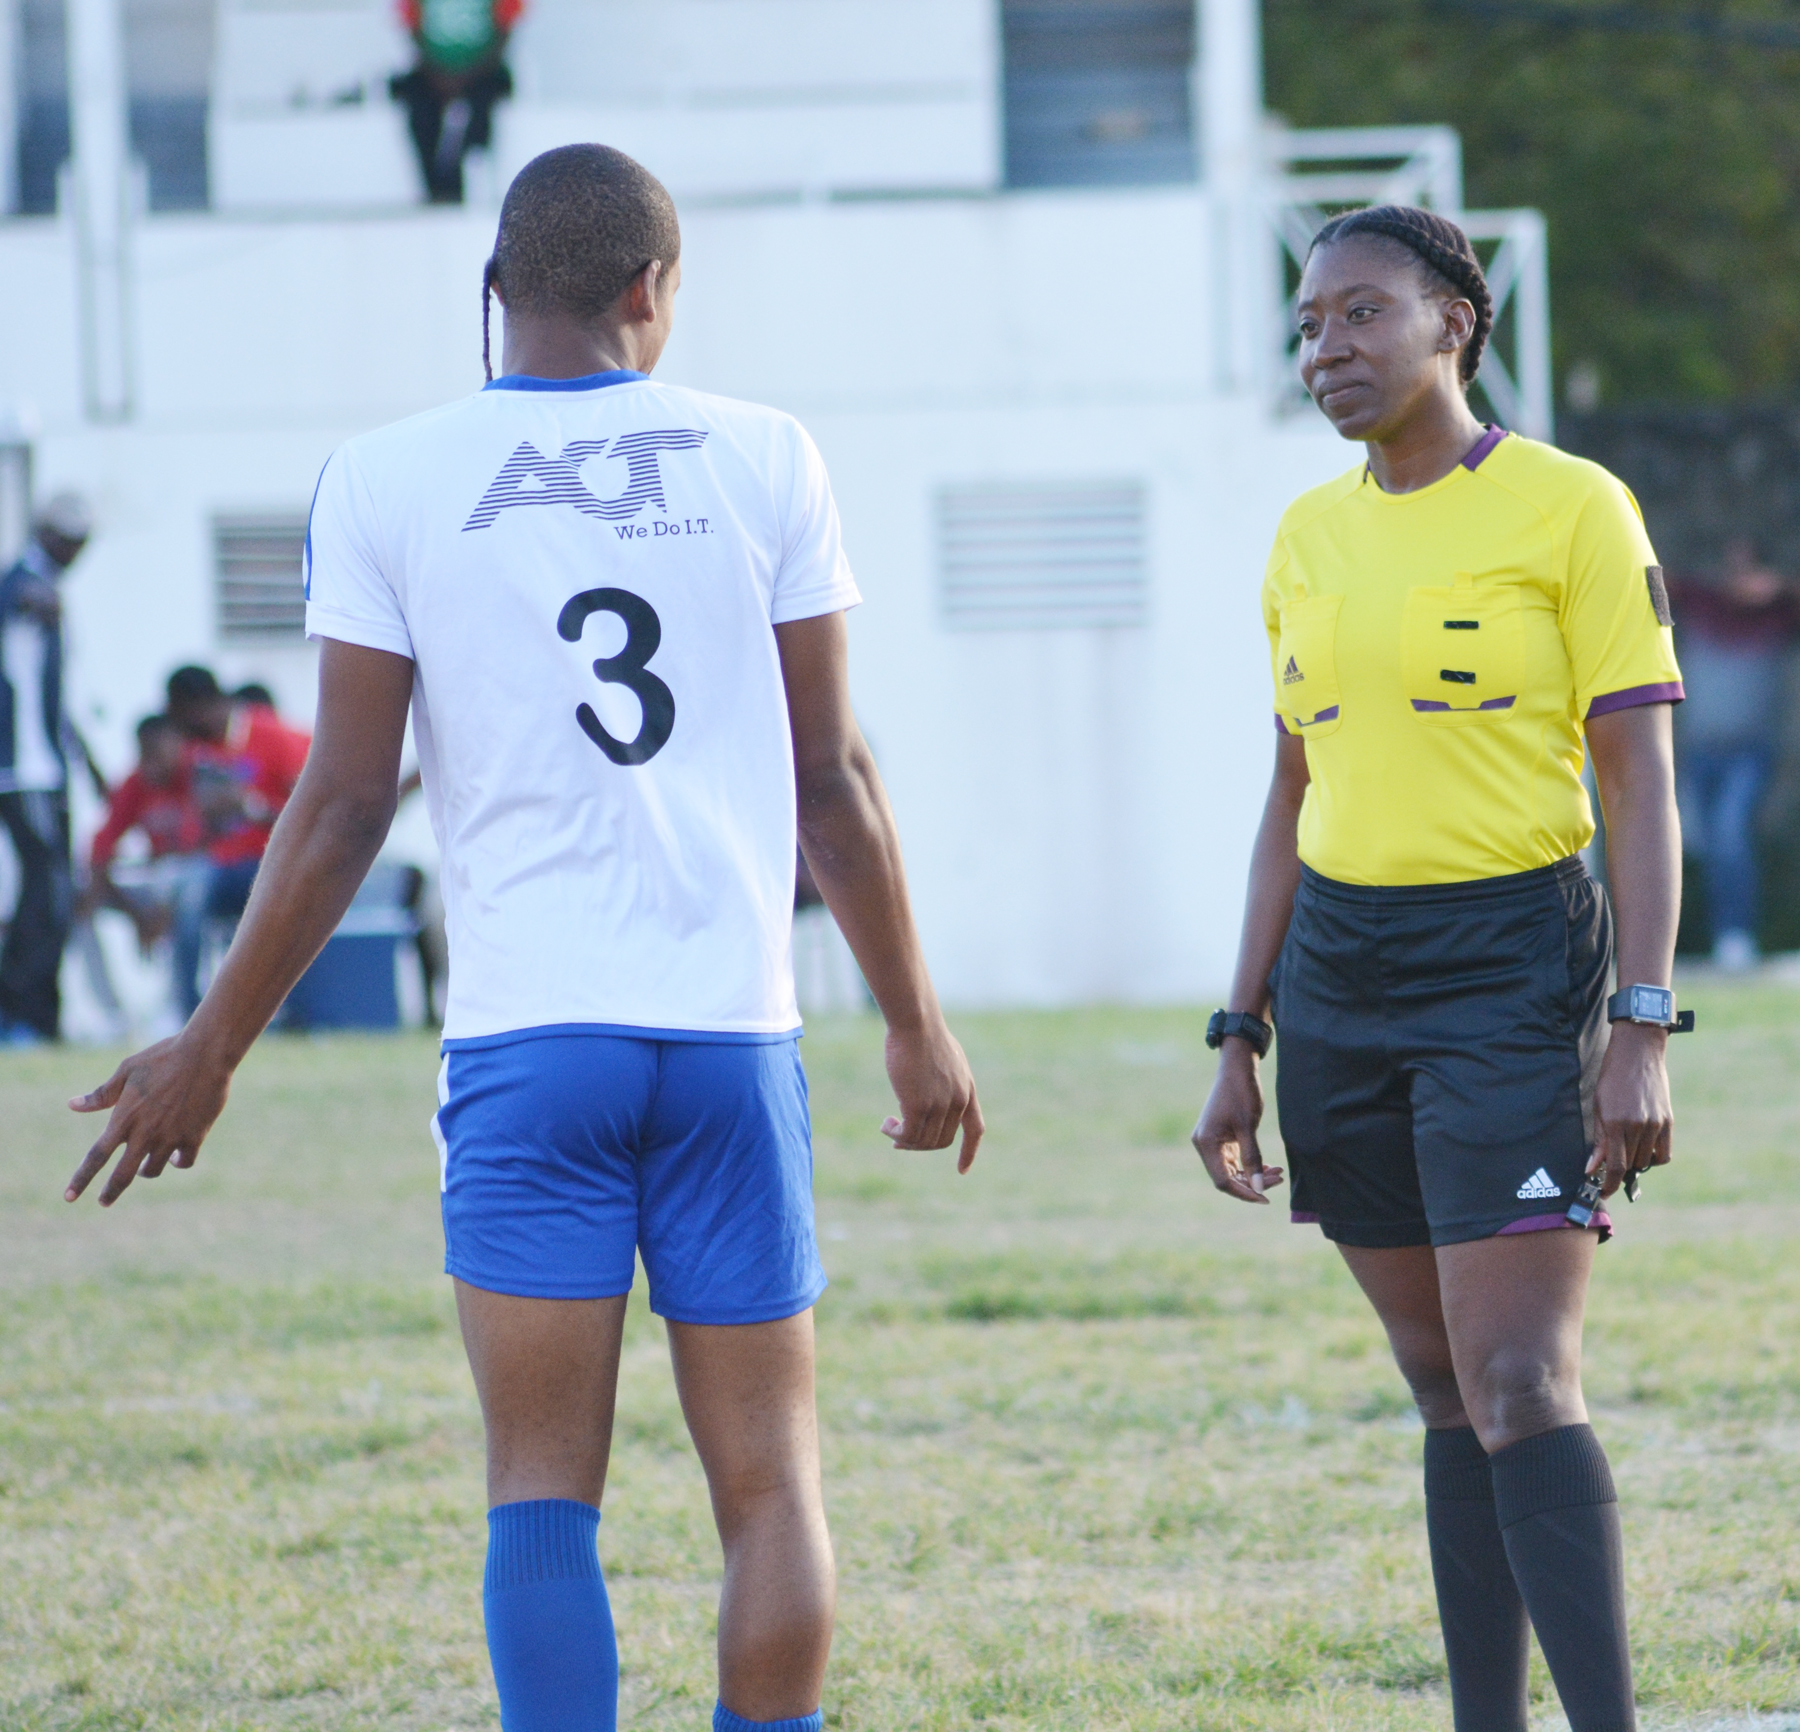 Top women's referee reveals 'freak accident' forced her out of